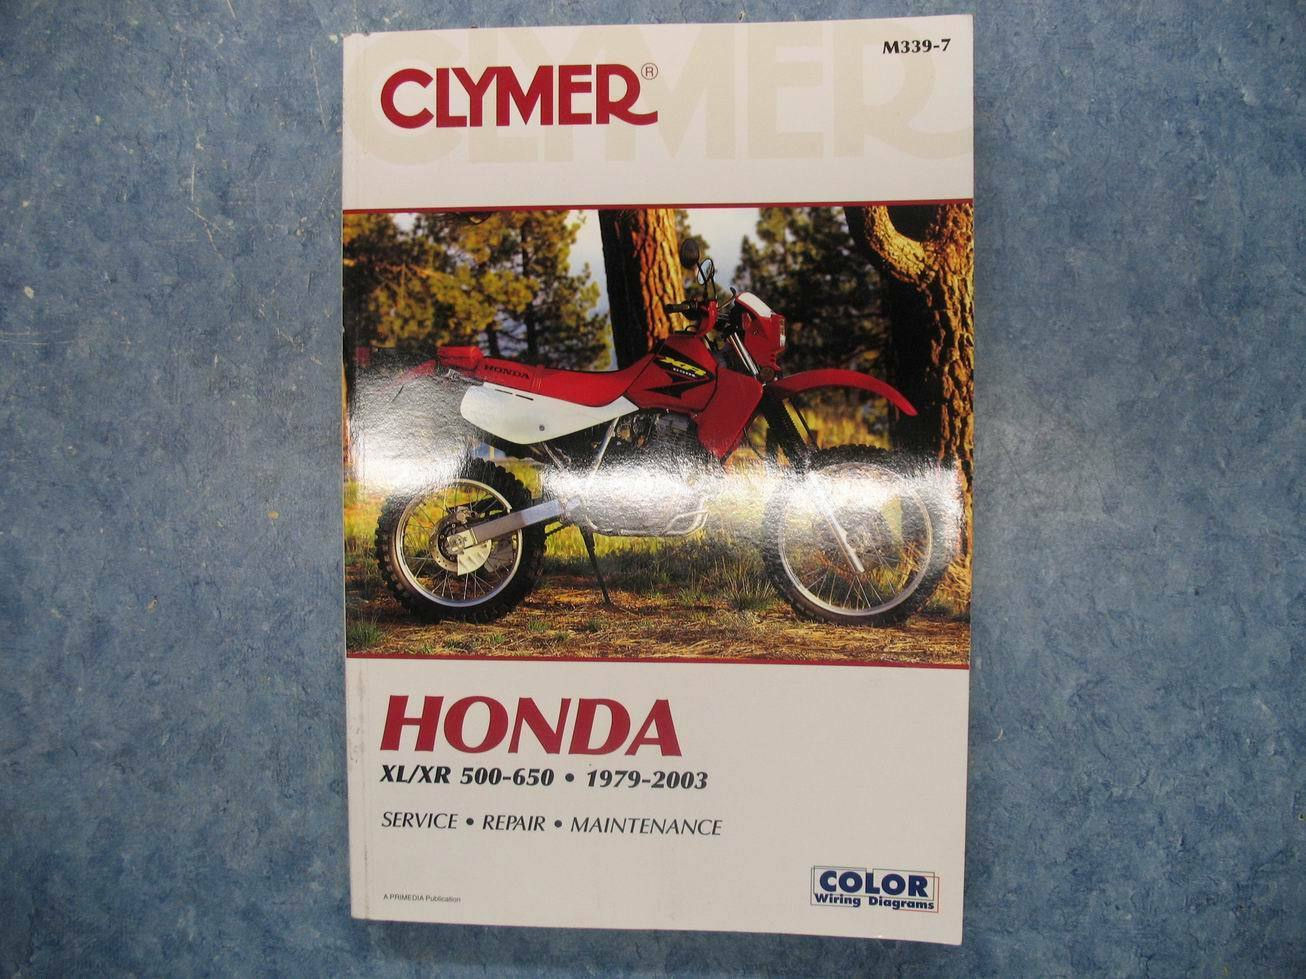 Clymer Honda 1979 2003 Xl Xr 500 650 Service Repair Maintenance 02 Wiring Diagram Manual Ebay